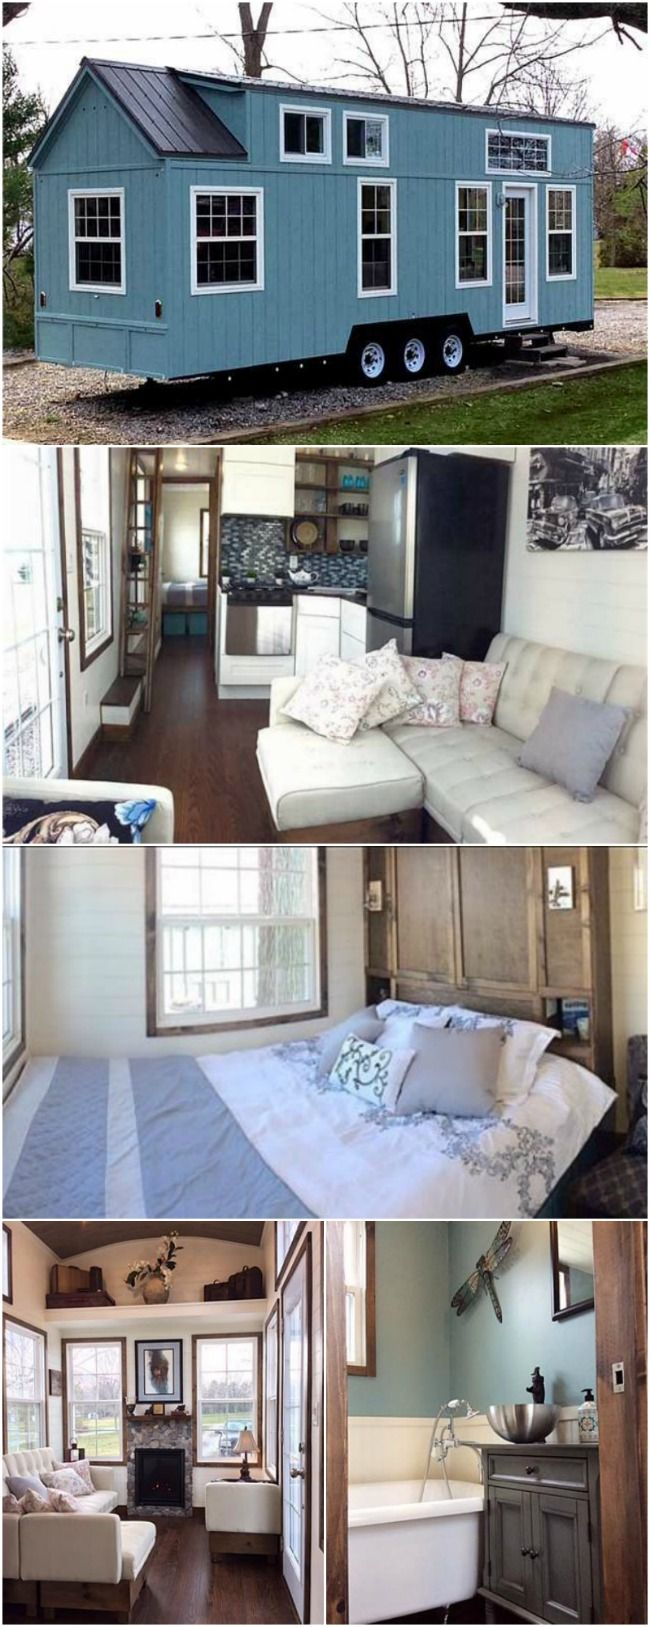 Luxurious and spacious tiny house on wheels for sale for for 4 bedroom tiny house on wheels